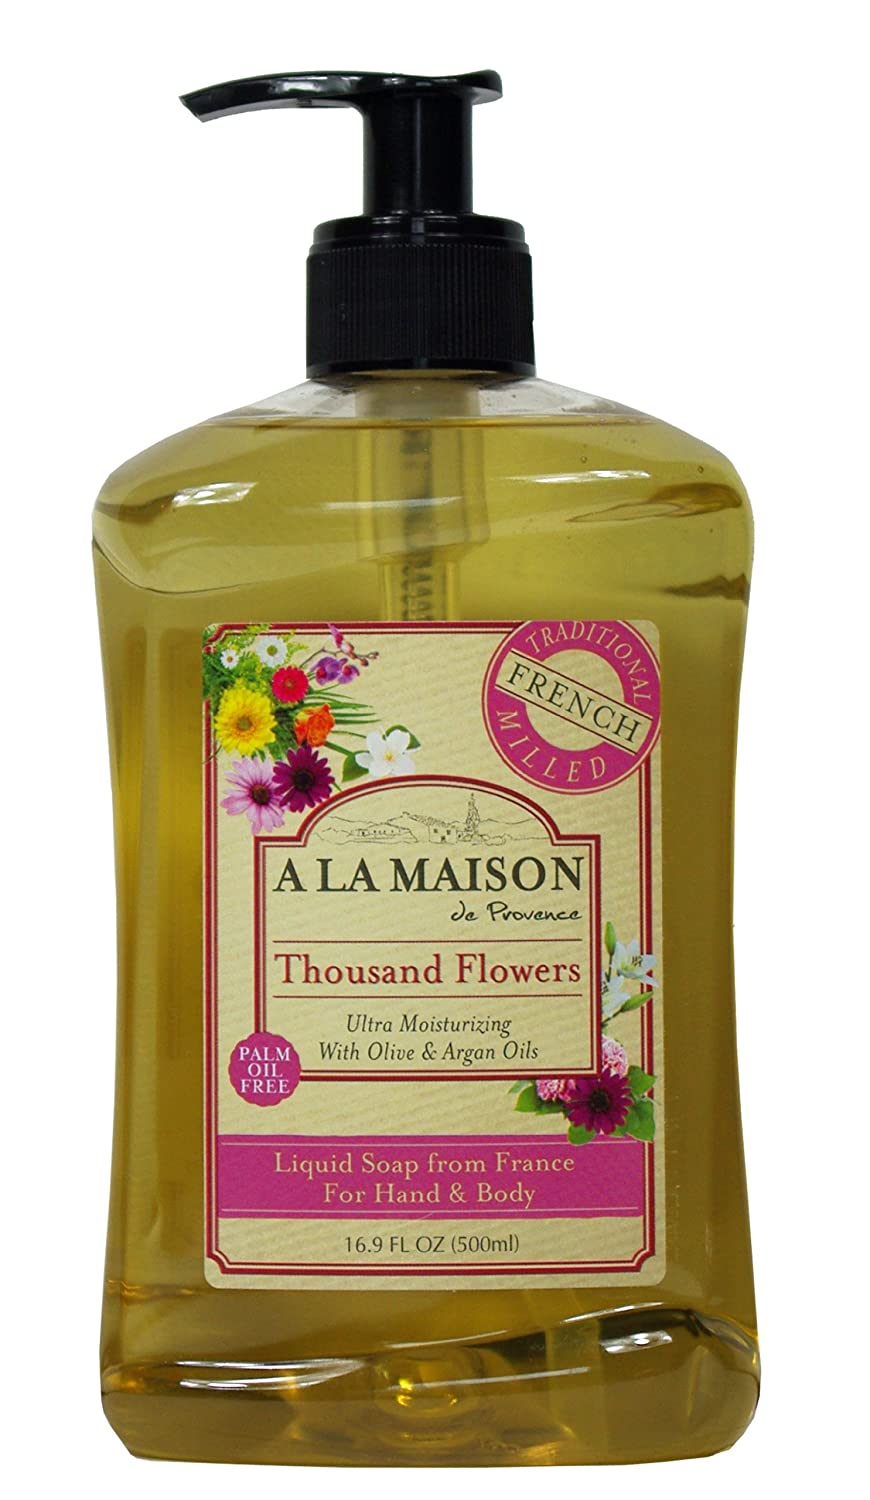 A La Maison French Liquid Soap Rosemary Mint -- 16.9 fl oz 00031